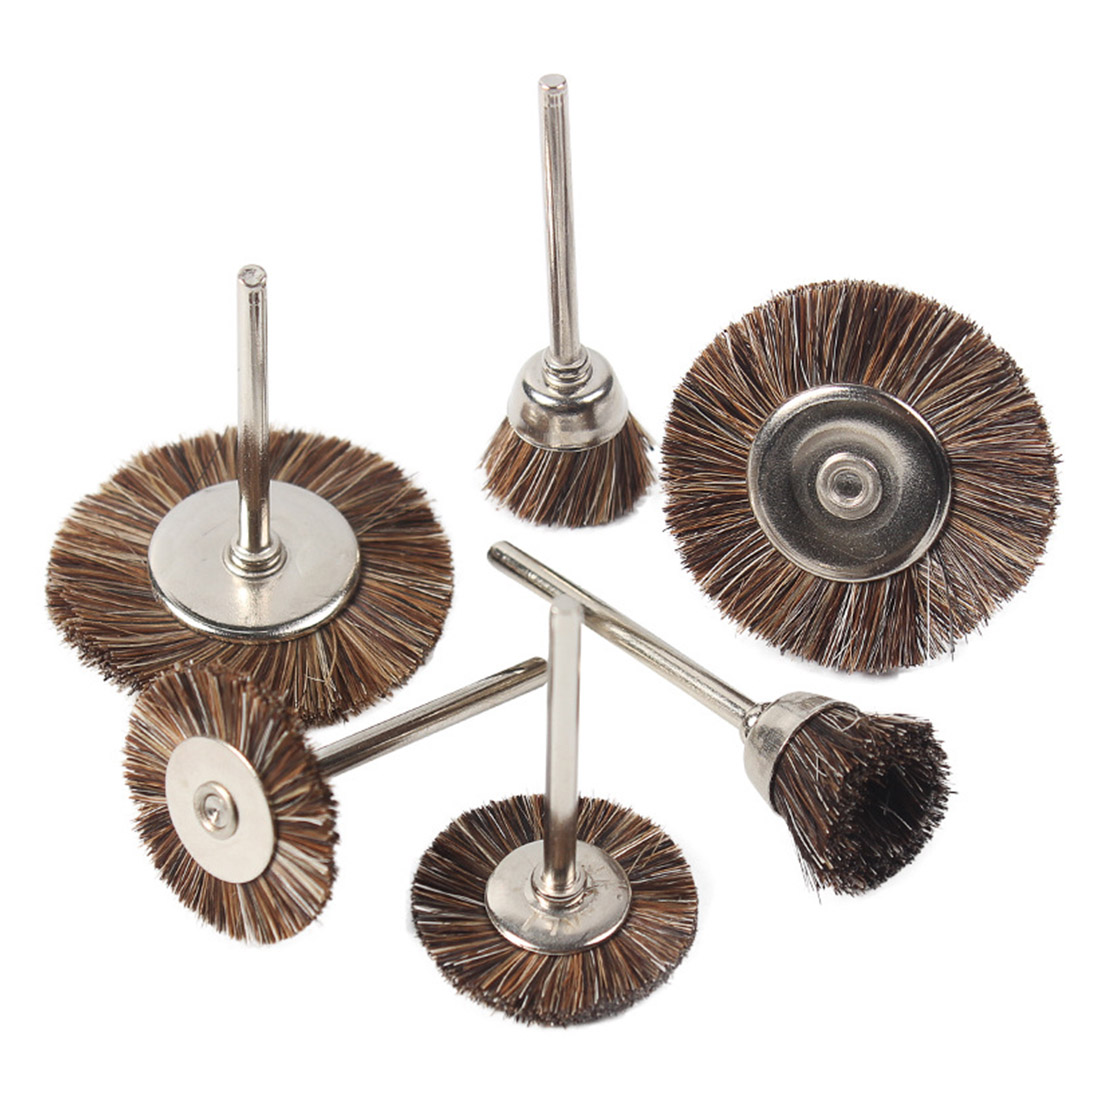 Wire Wheel Brushes Die Grinder Rotary Electric Tool T/ Y Type For Wood/ Relief/ Root Carving 3MM Shank